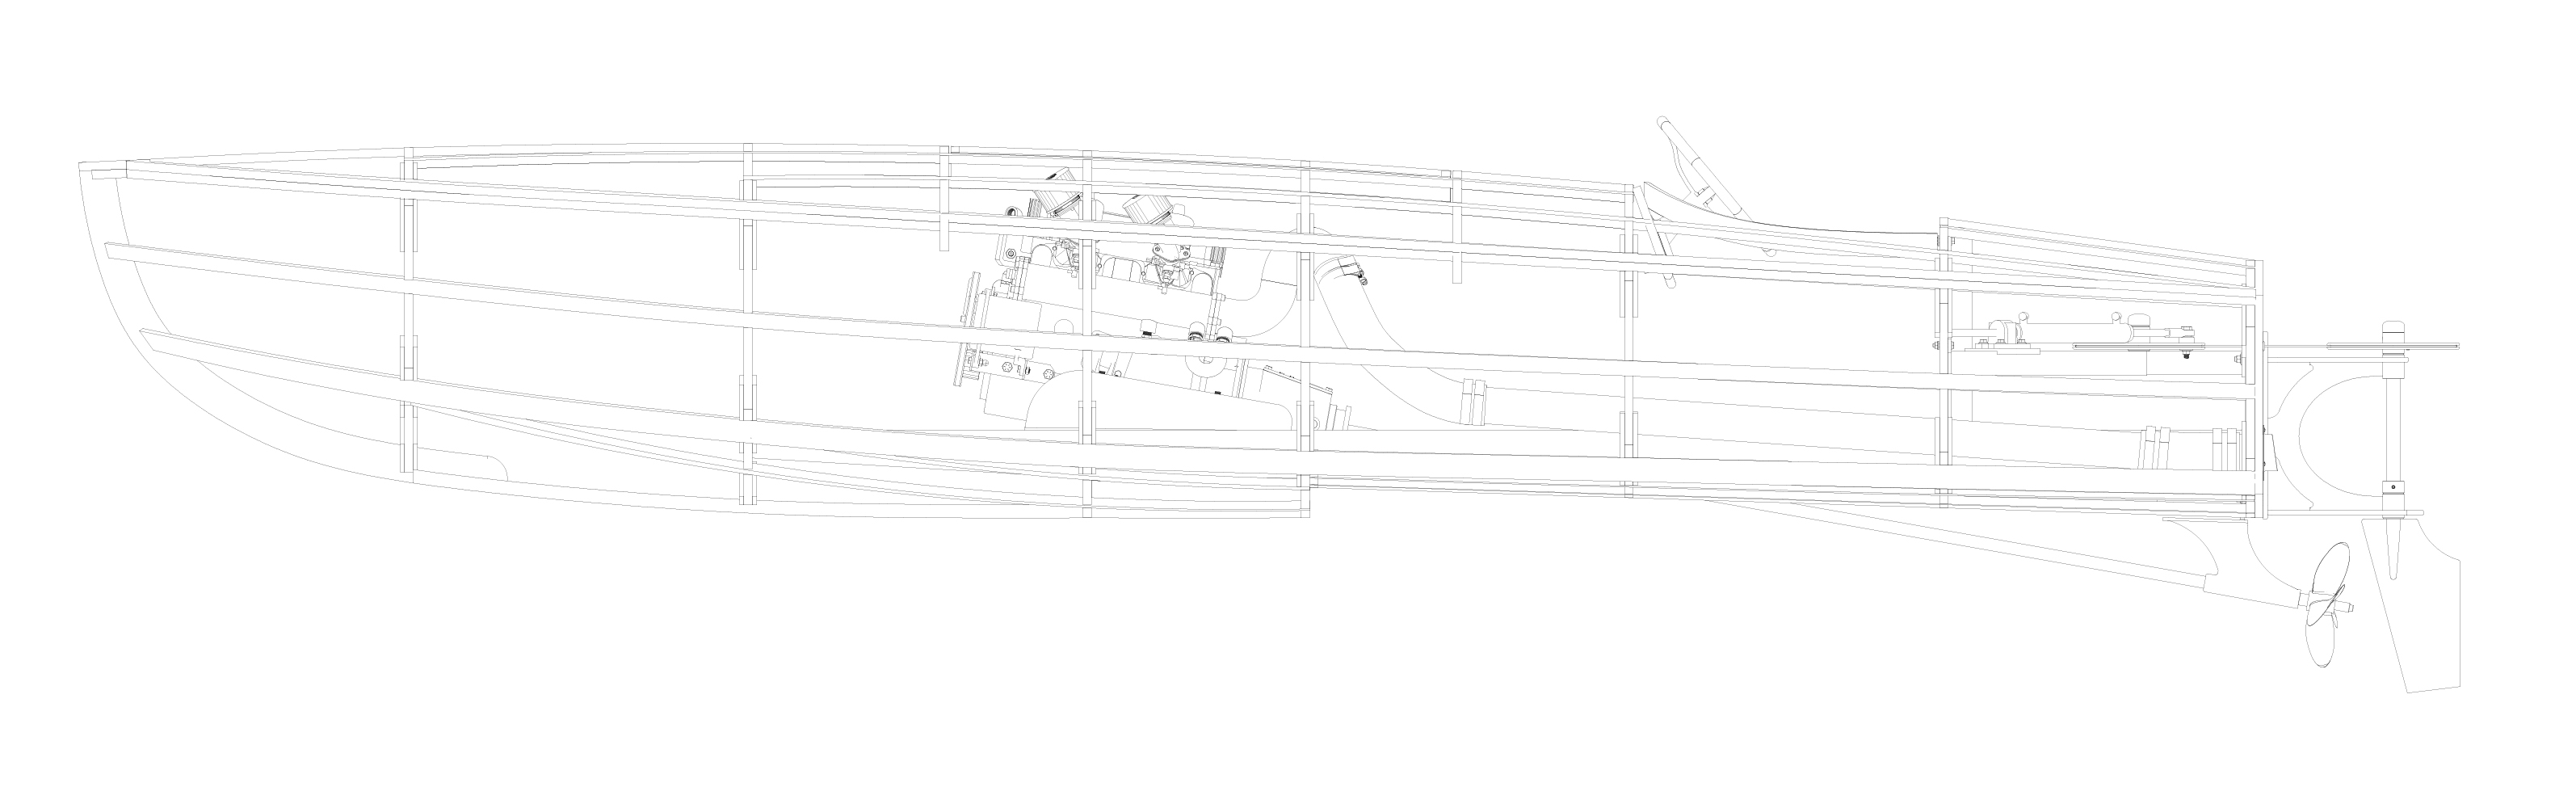 CAD Drawing of Rocket MkII Boat Pre Crossflow Engine Installation